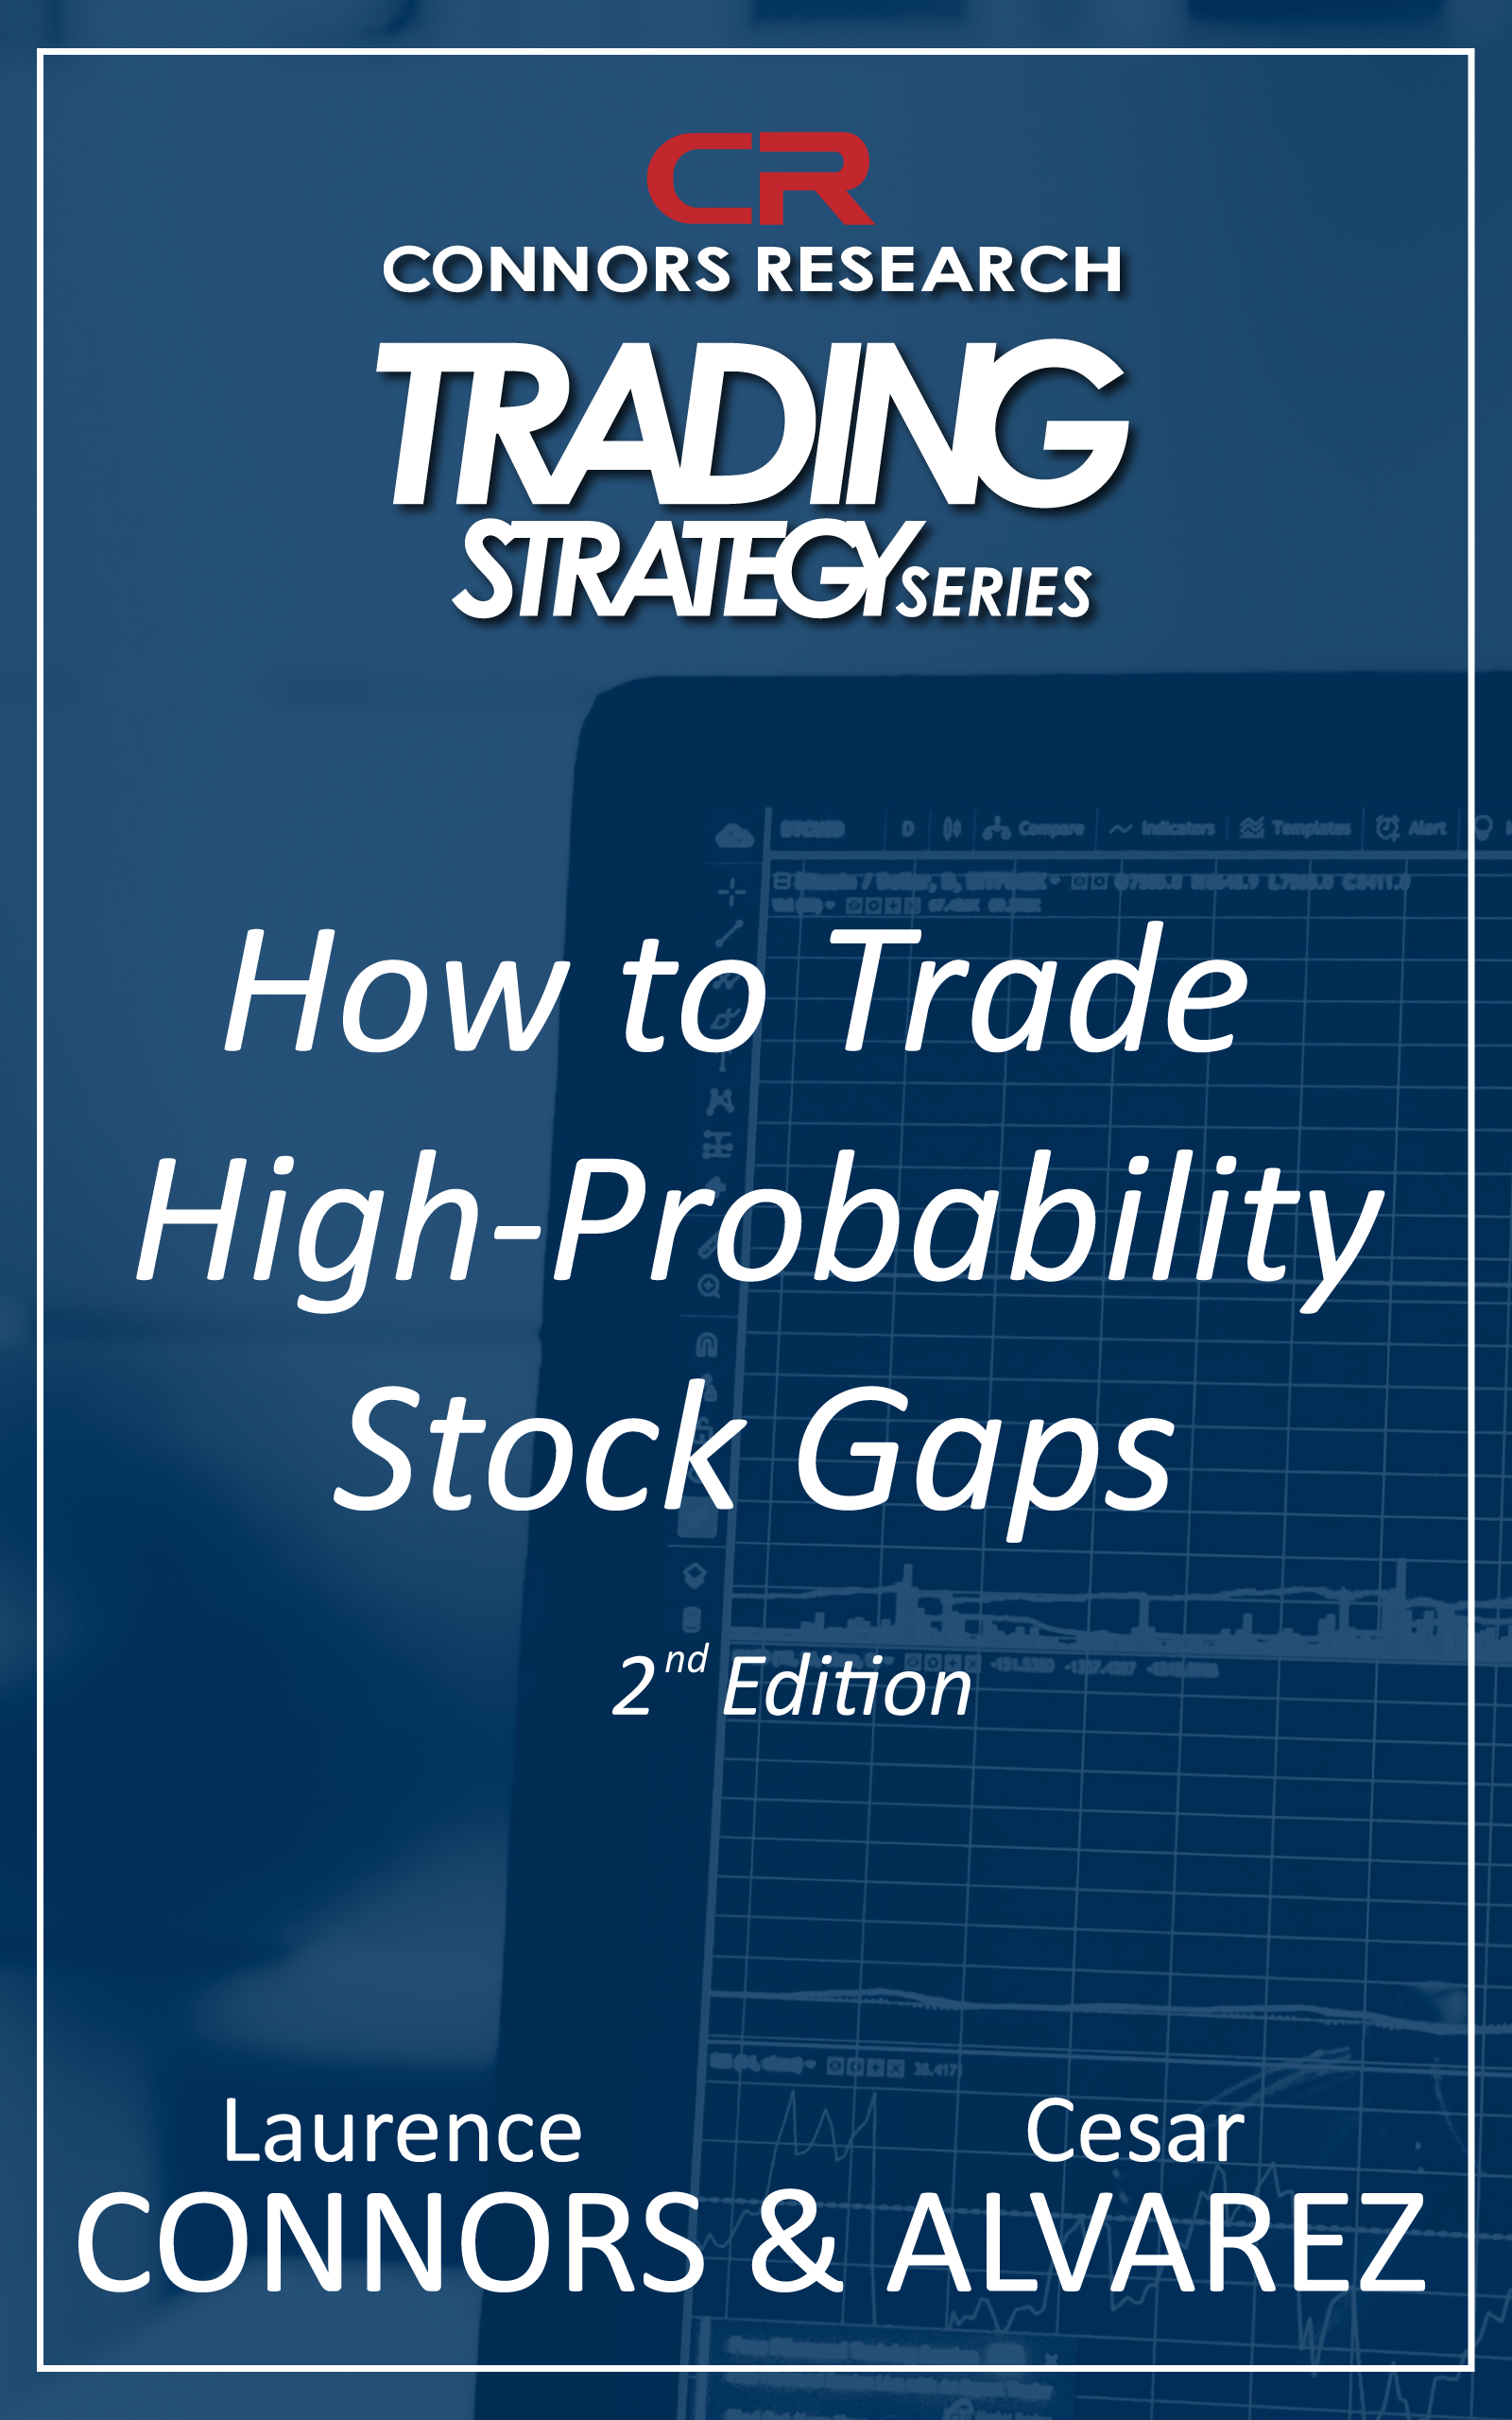 Connors Research Trading Strategy Series: How to Trade High Probability Stock Gaps 2nd Edition BOO-CRS2-D